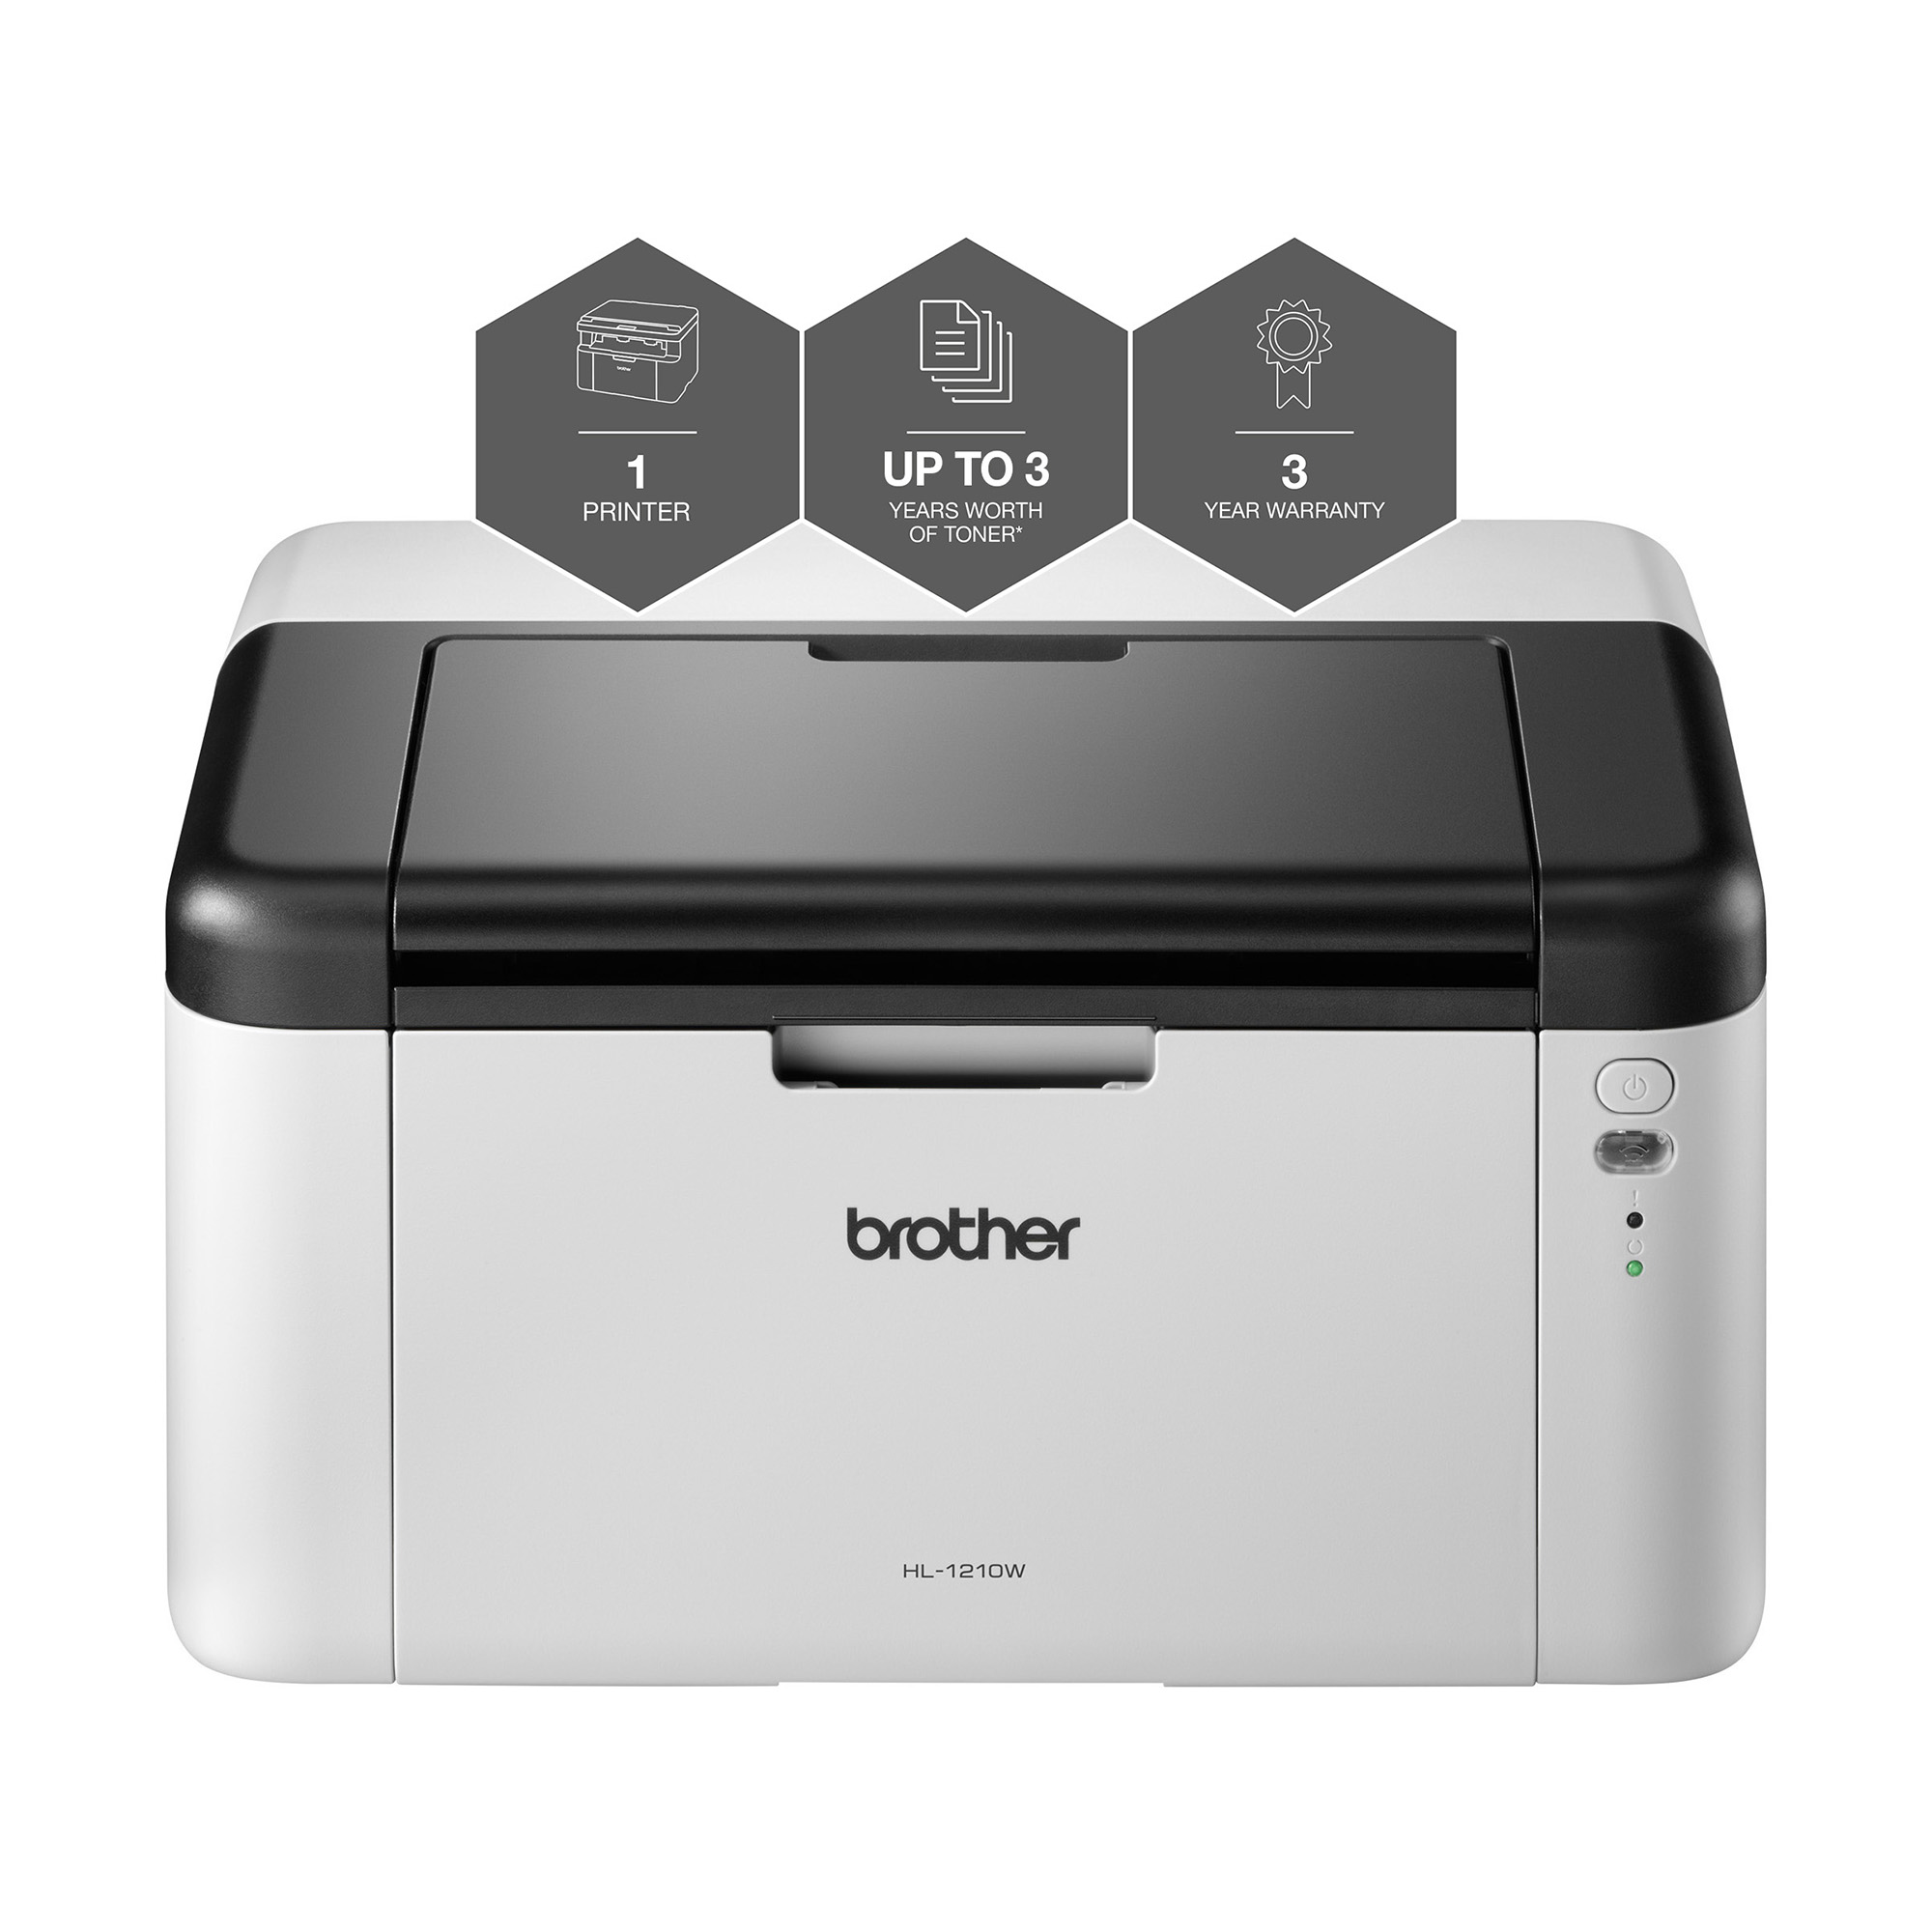 Multifunctional Machines Brother HL1210W All-in-Box Laser Printer Ref HL1210WVBZU1